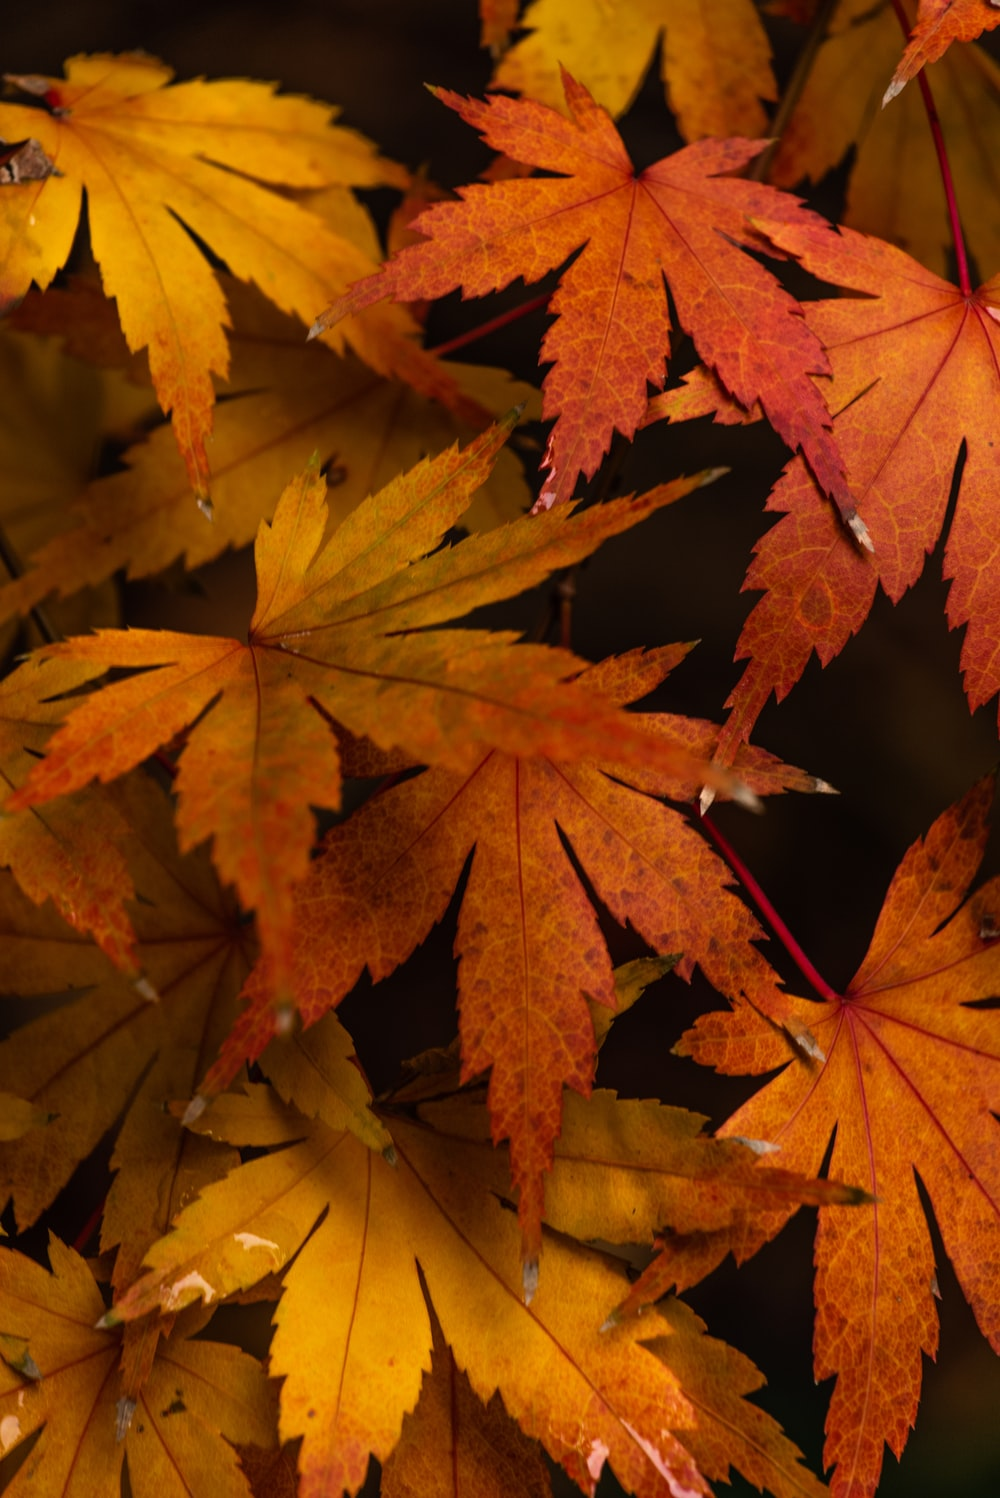 brown maple leaves in close up photography